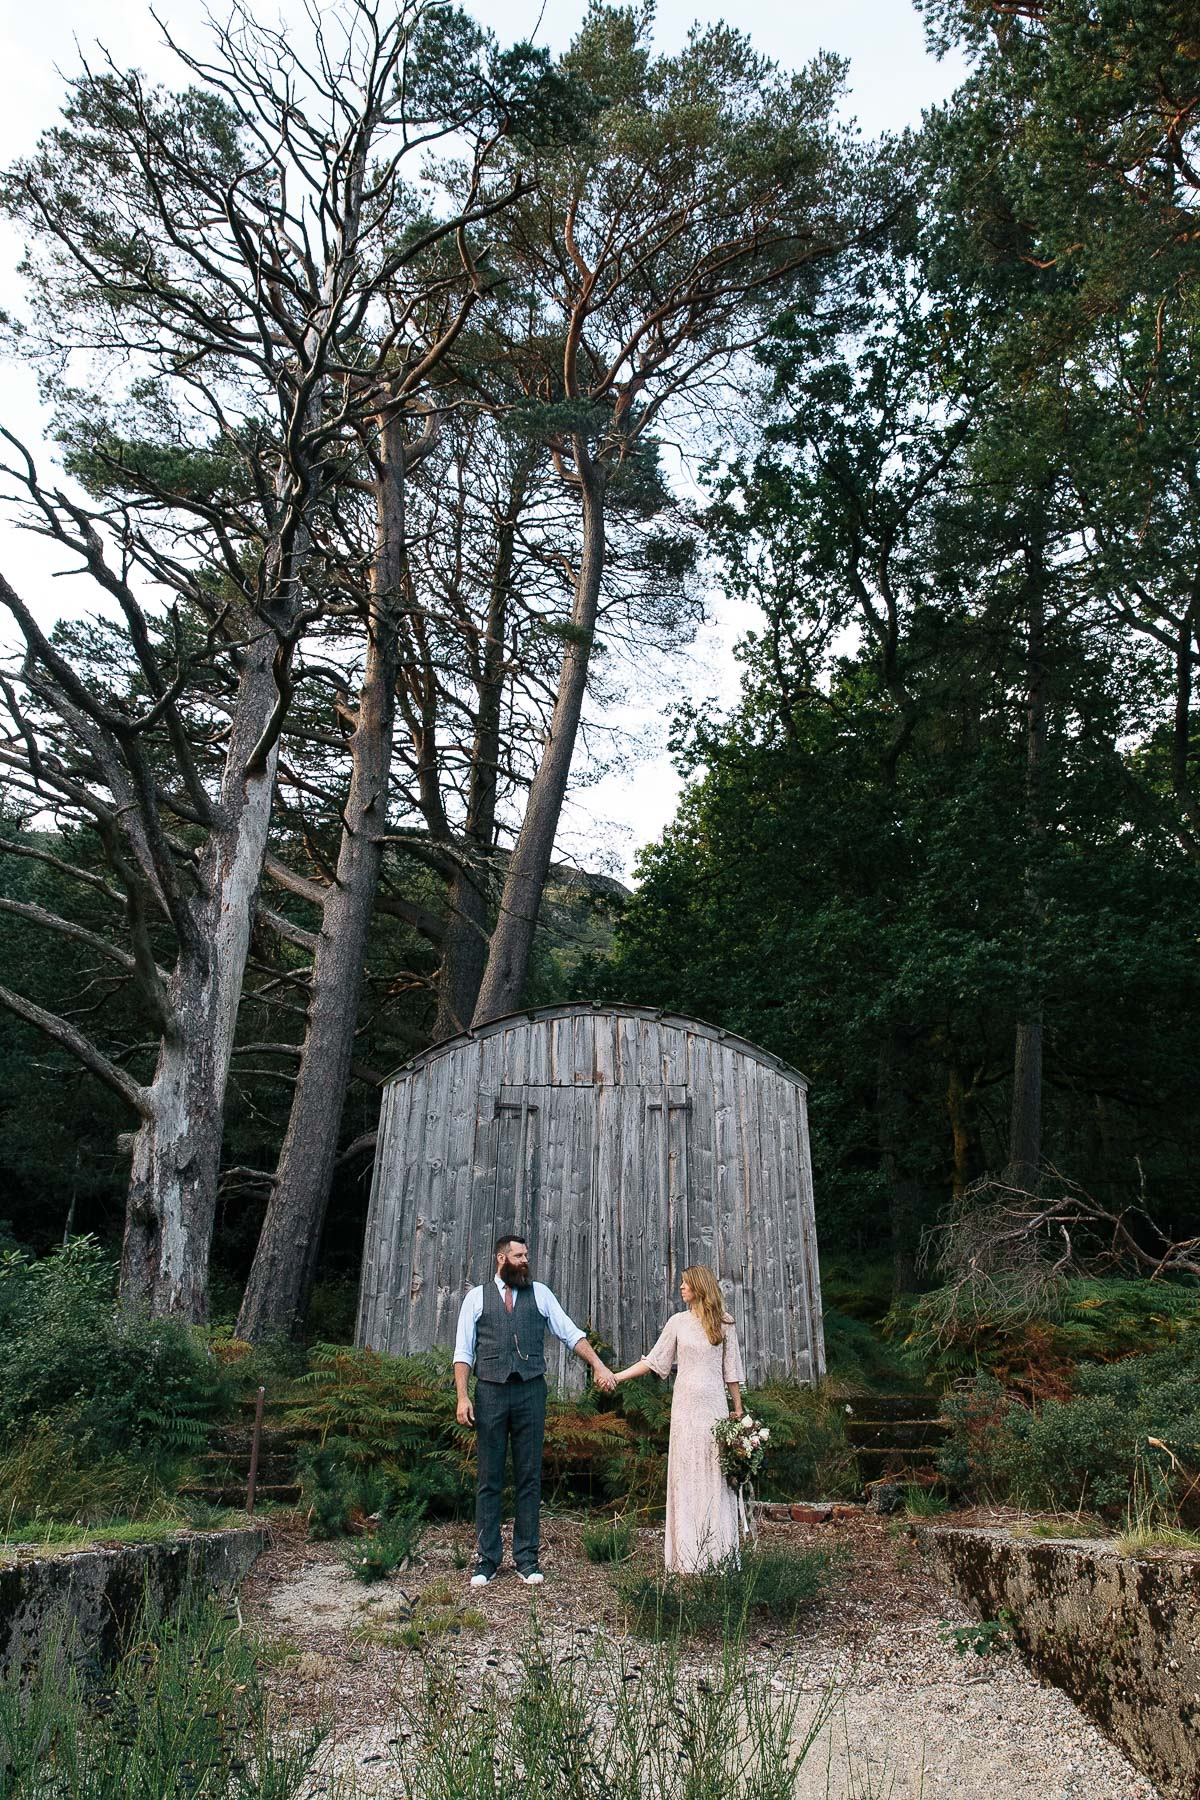 Loch-highland-elopement-wedding-11.jpg